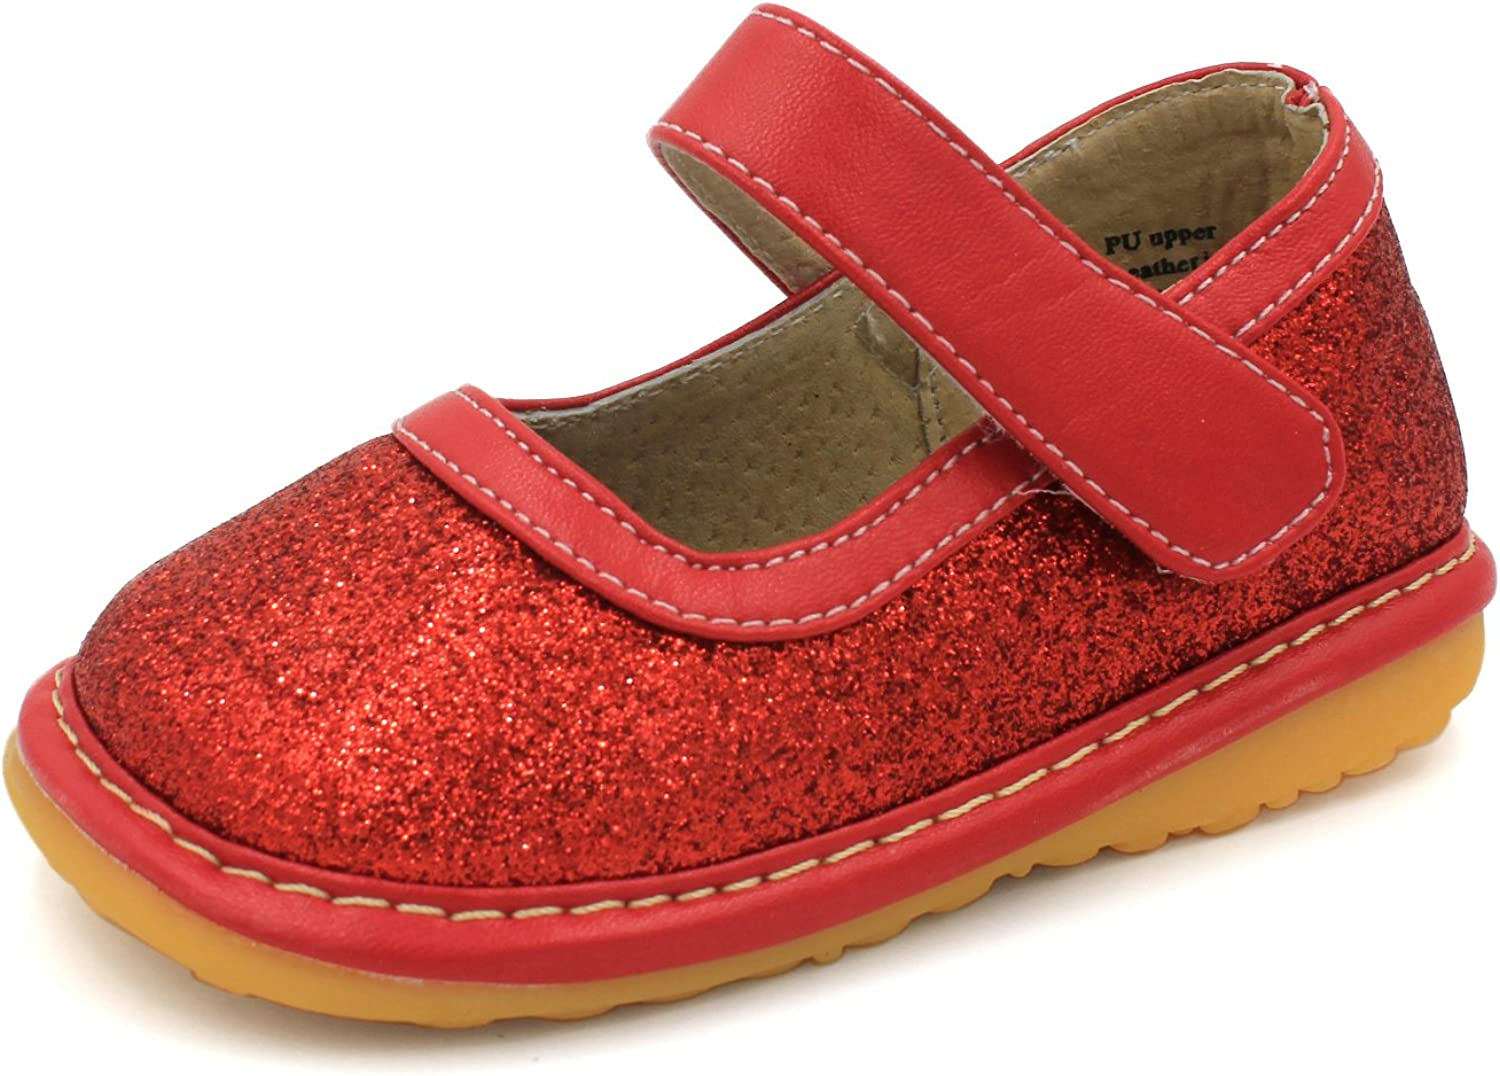 Little Mae's Boutique Mary Jane Squeaky Shoes for Toddler Girls, Ideal Walking Shoes with Removable Squeaker and Adjustable Velcro Strap - Soft Sole Shoes for Little Girls